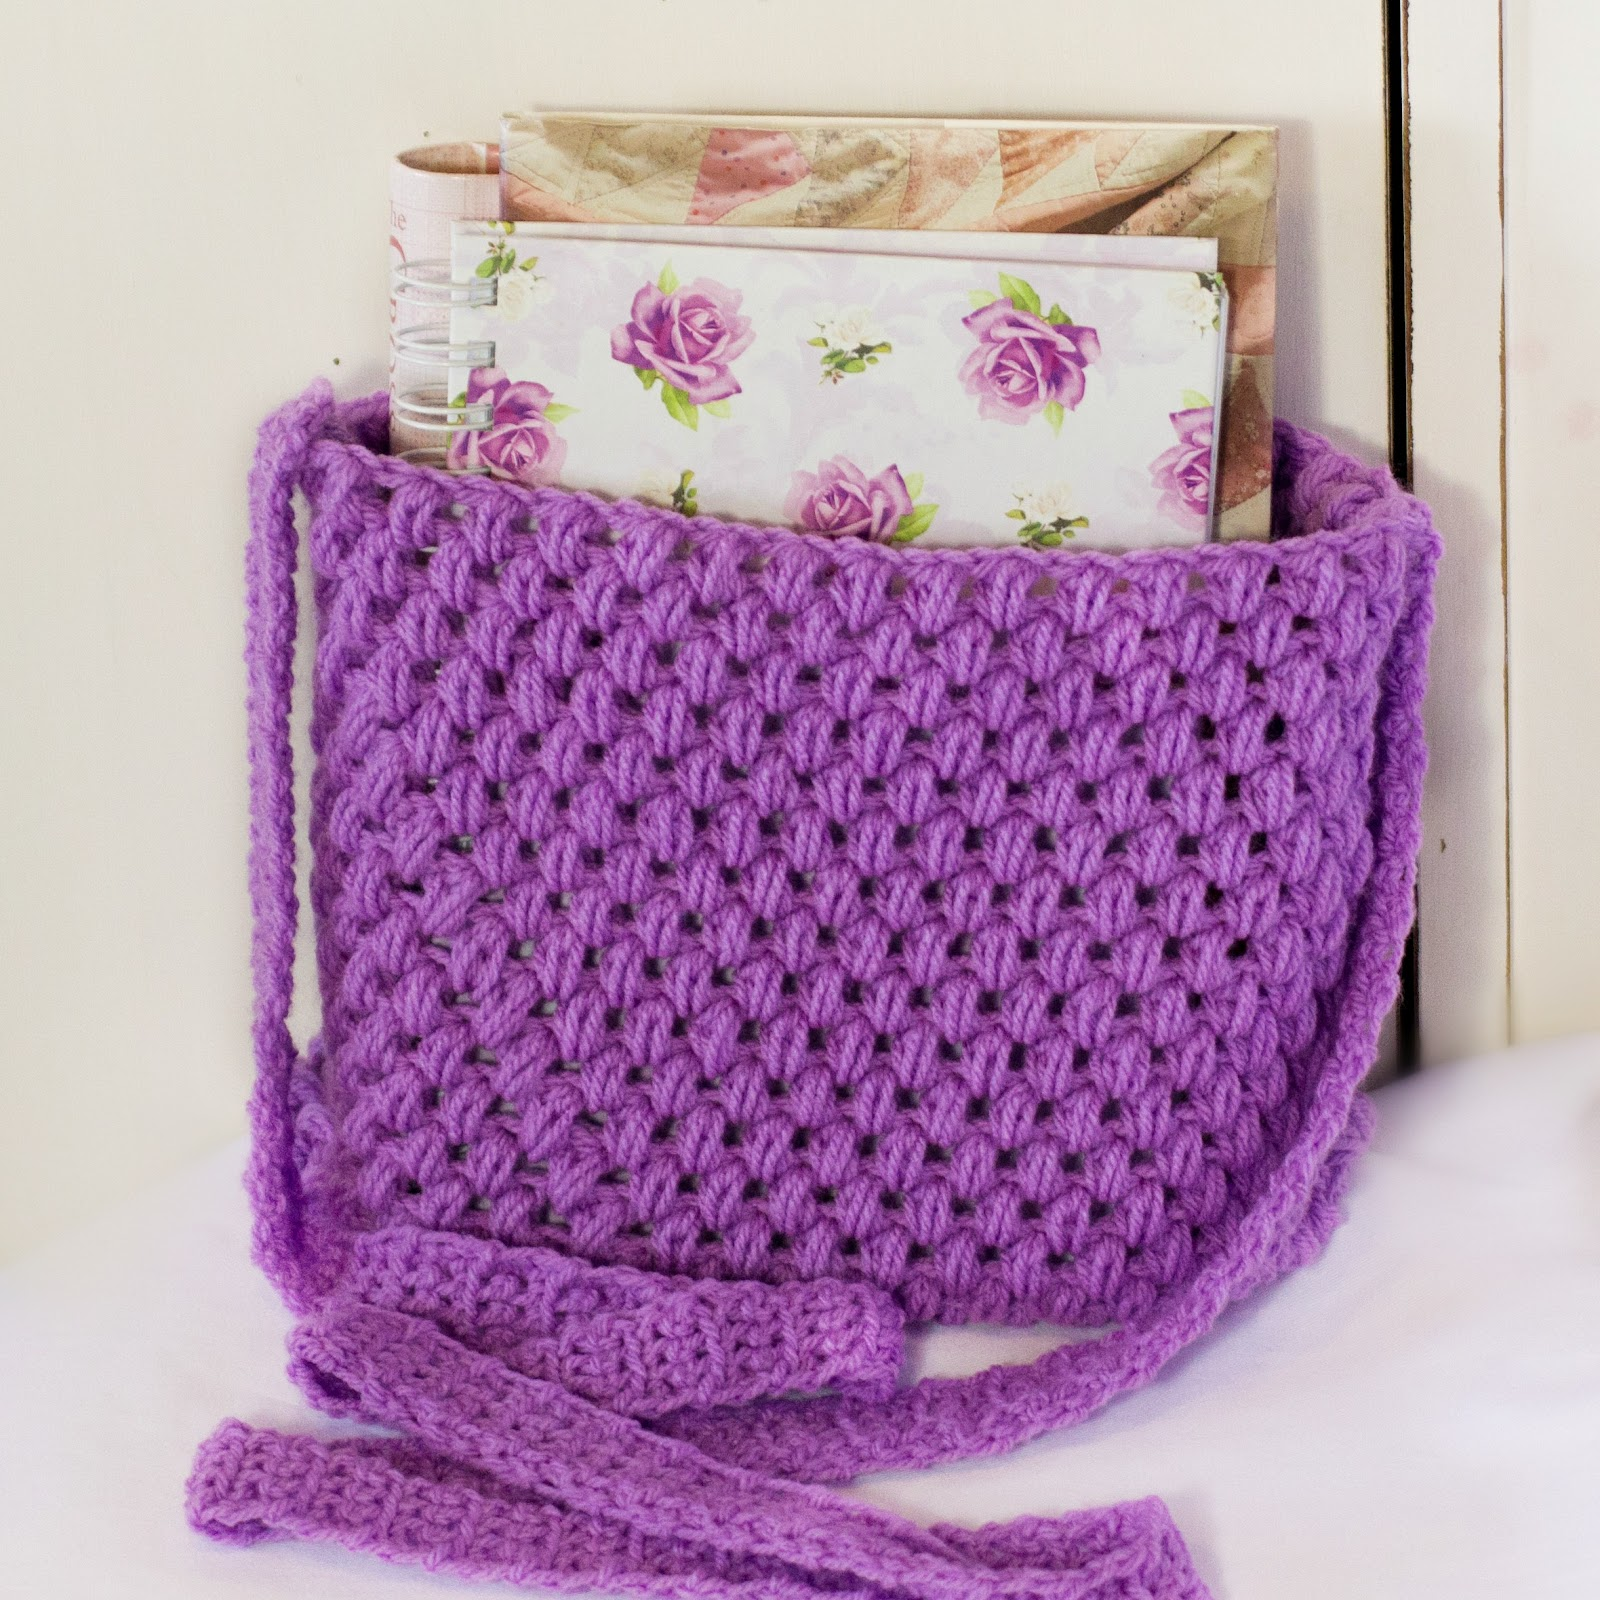 Crochet Small Bag : Hopeful Honey Craft, Crochet, Create: March 2012